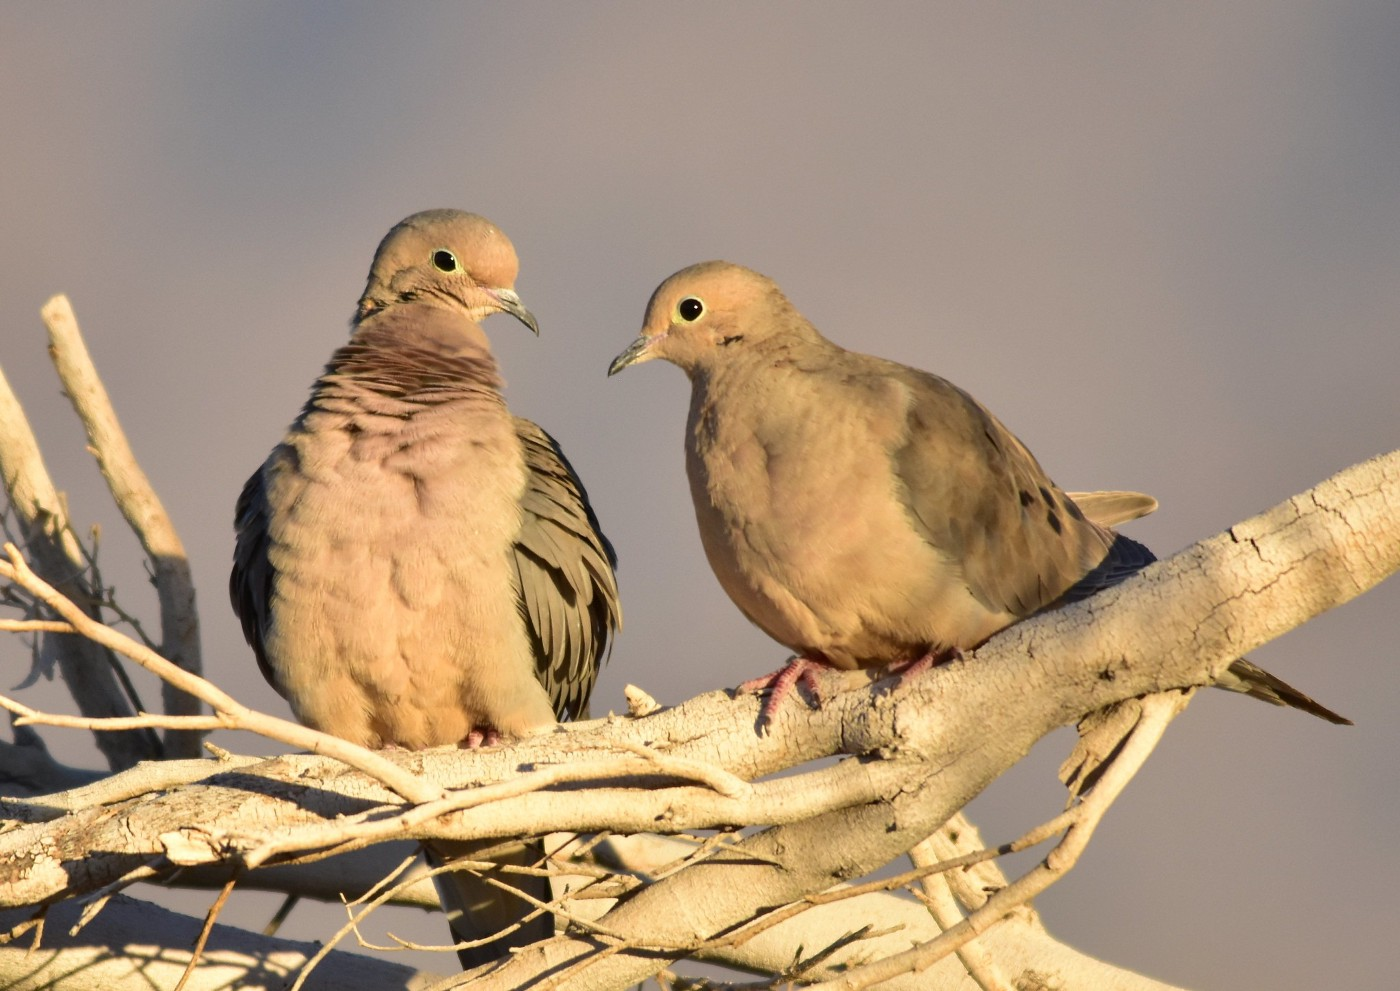 two Mourning doves perched on a tree branch